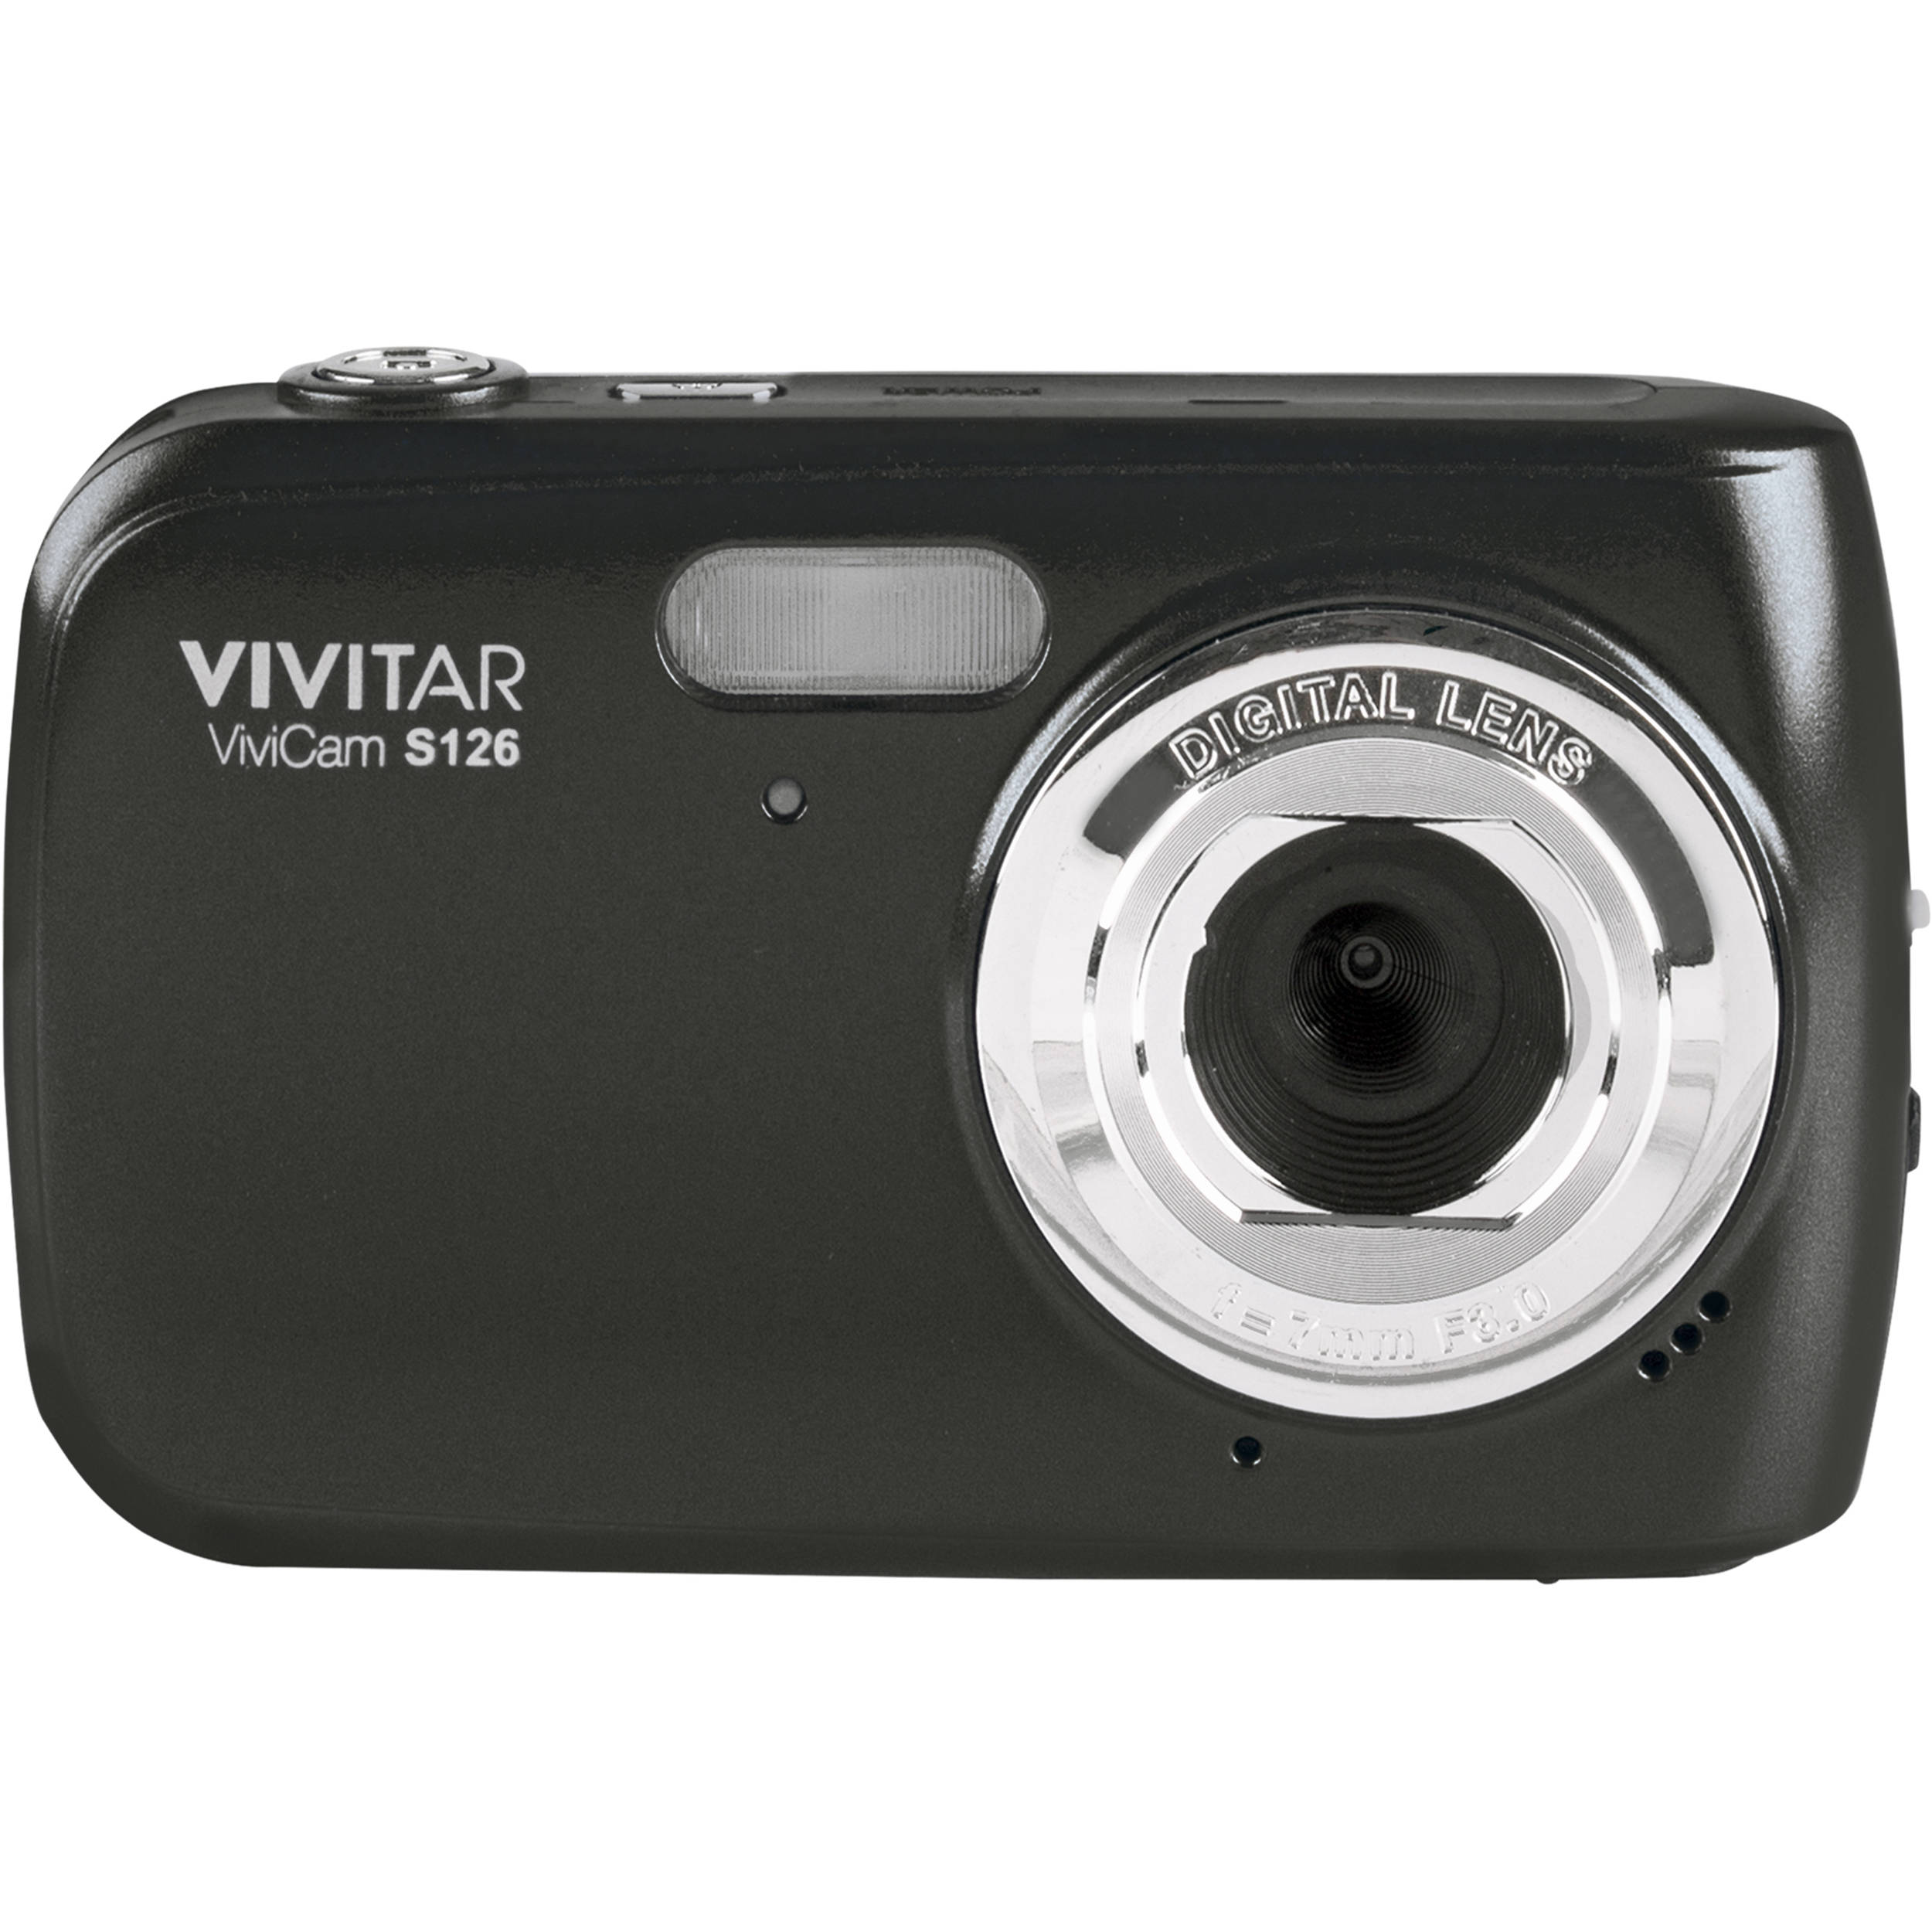 VIVITAR DIGITAL CAMERA DRIVERS FOR WINDOWS 10